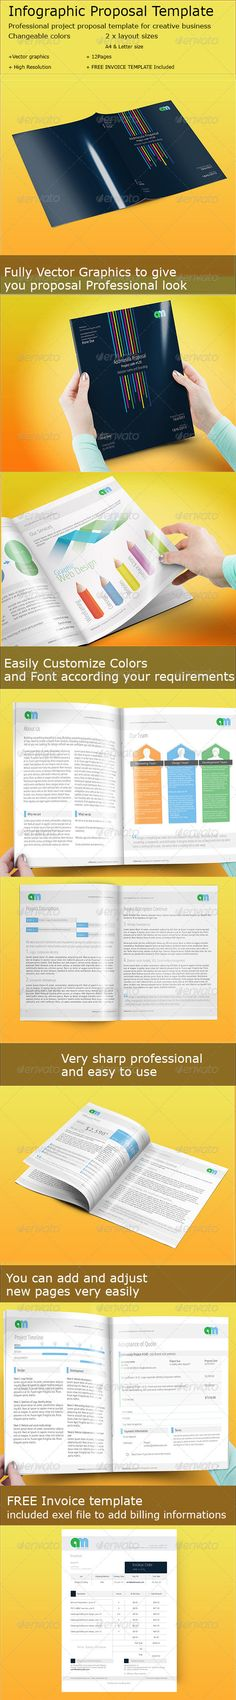 Infographic Ideas infographic proposal template : Corporate A4 Brochure Indesign Template | Templates, Brochures and ...